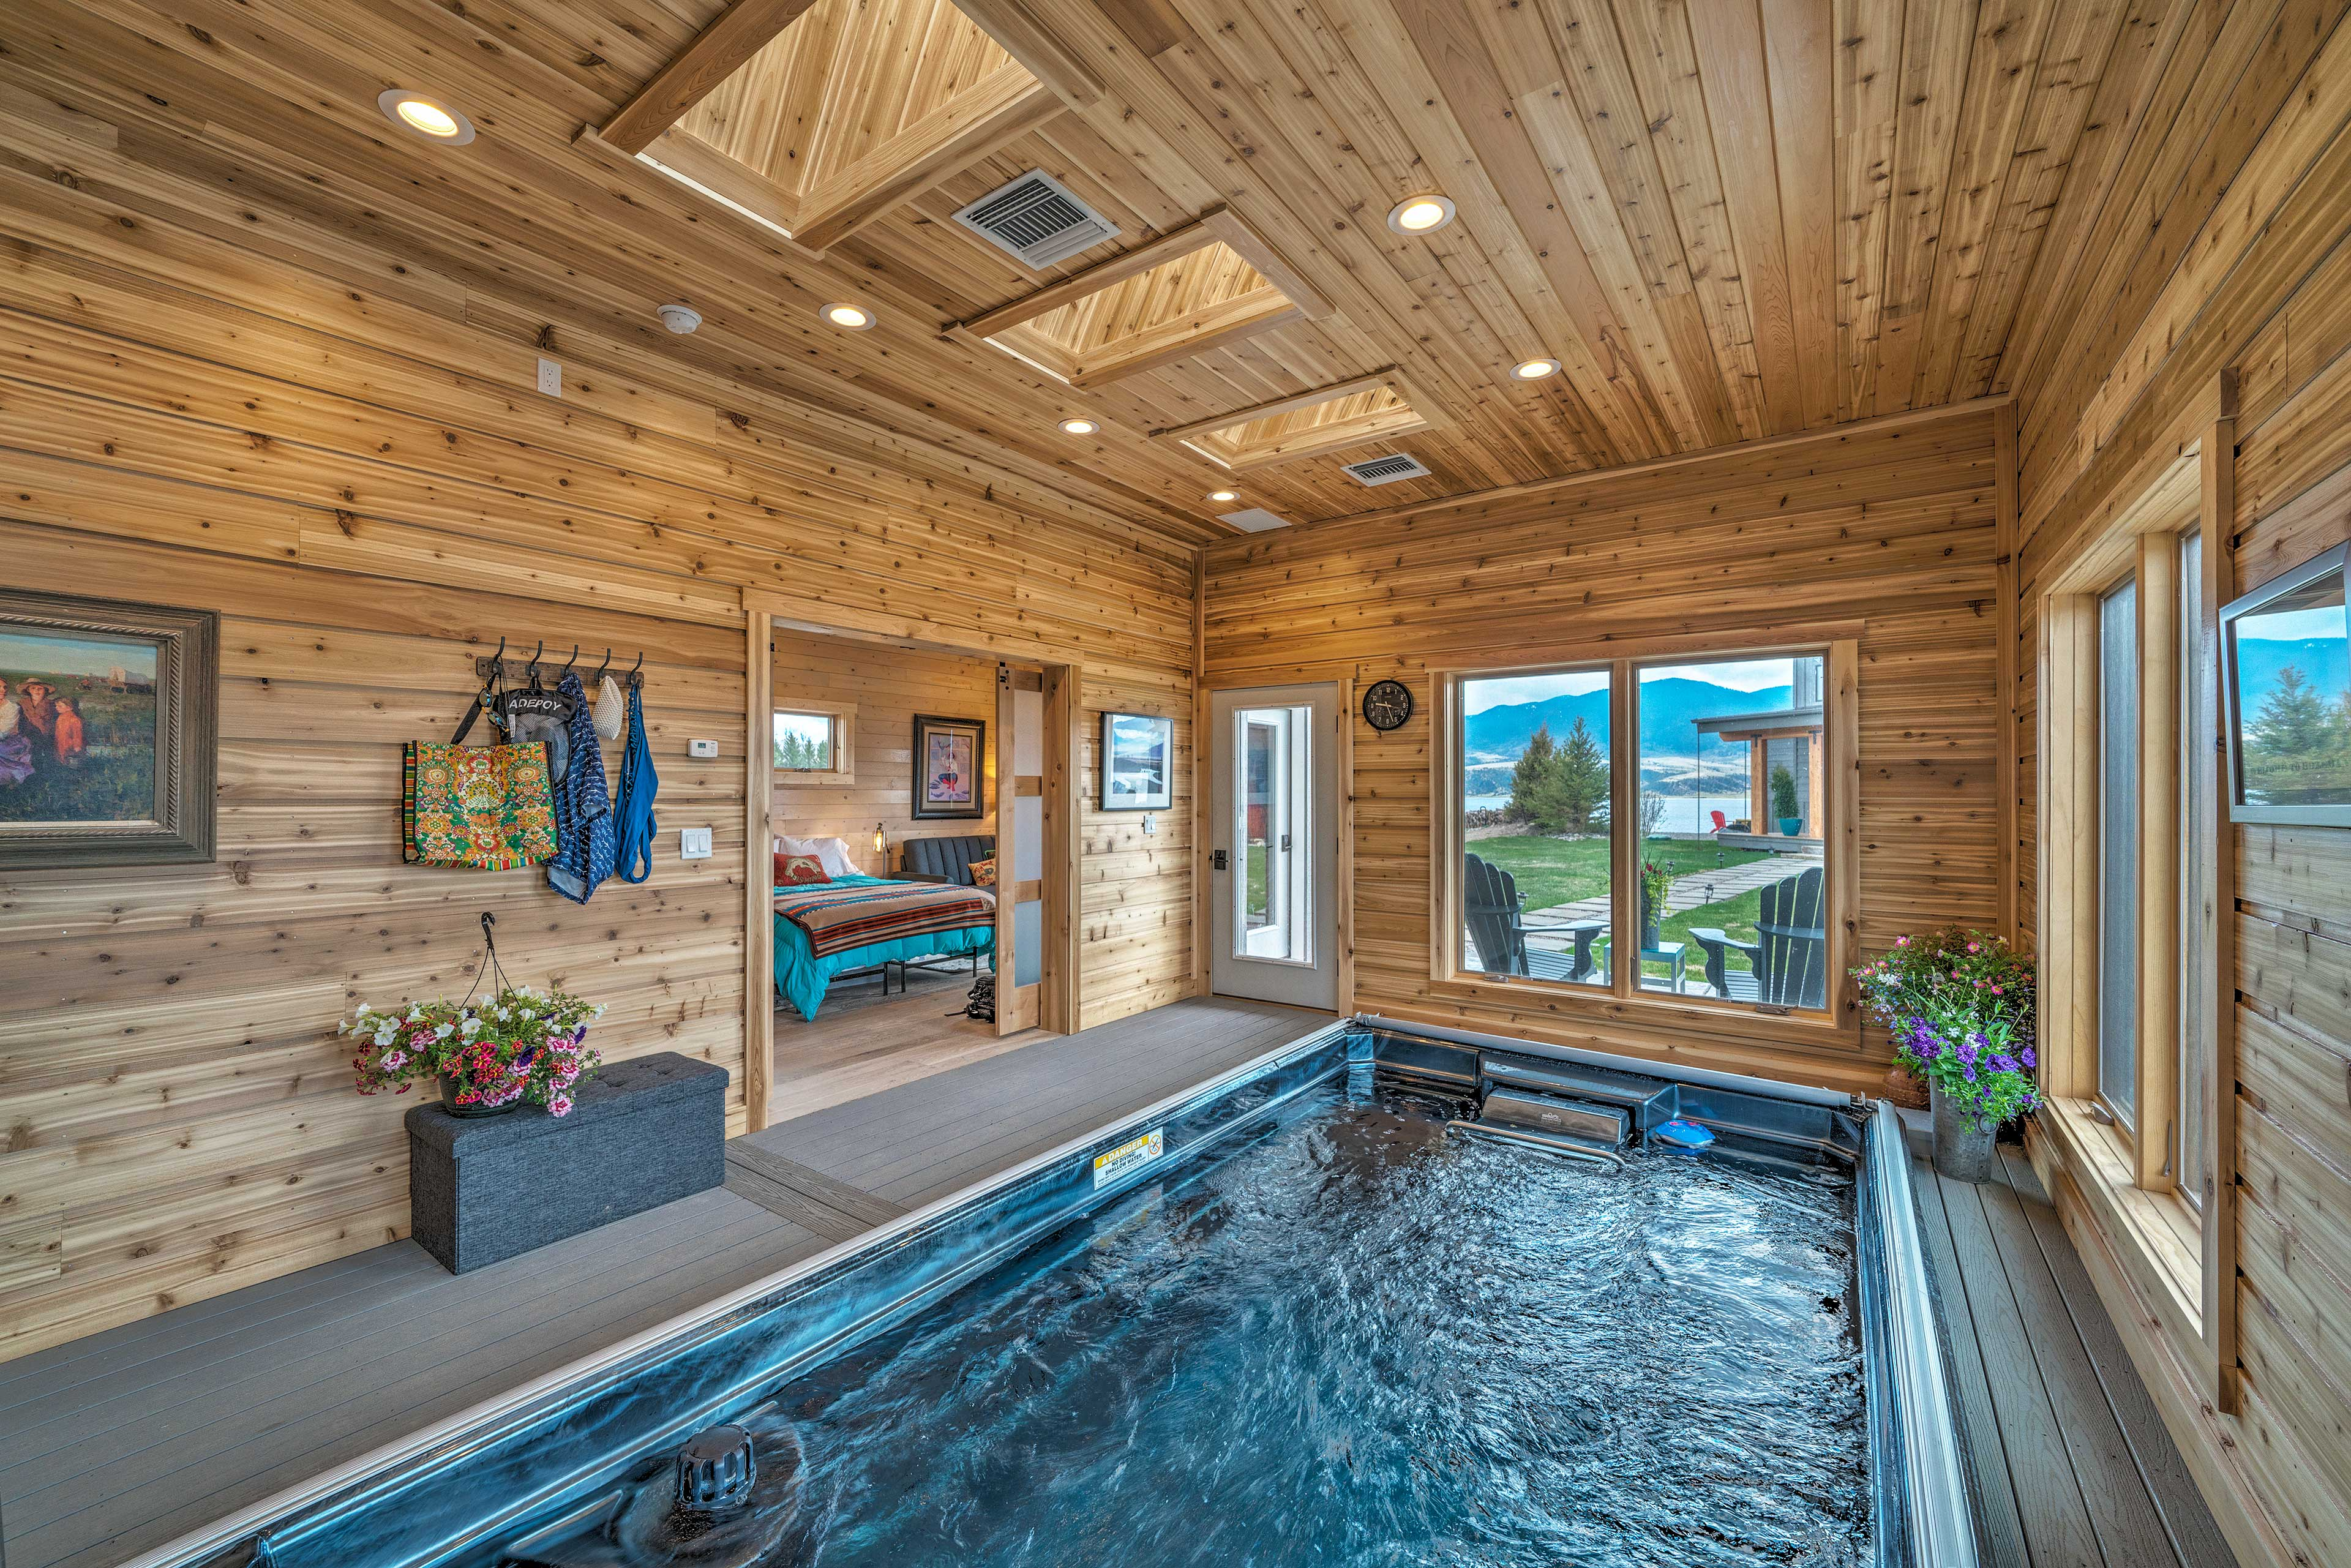 Inside, an indoor pool with mountain views awaits!